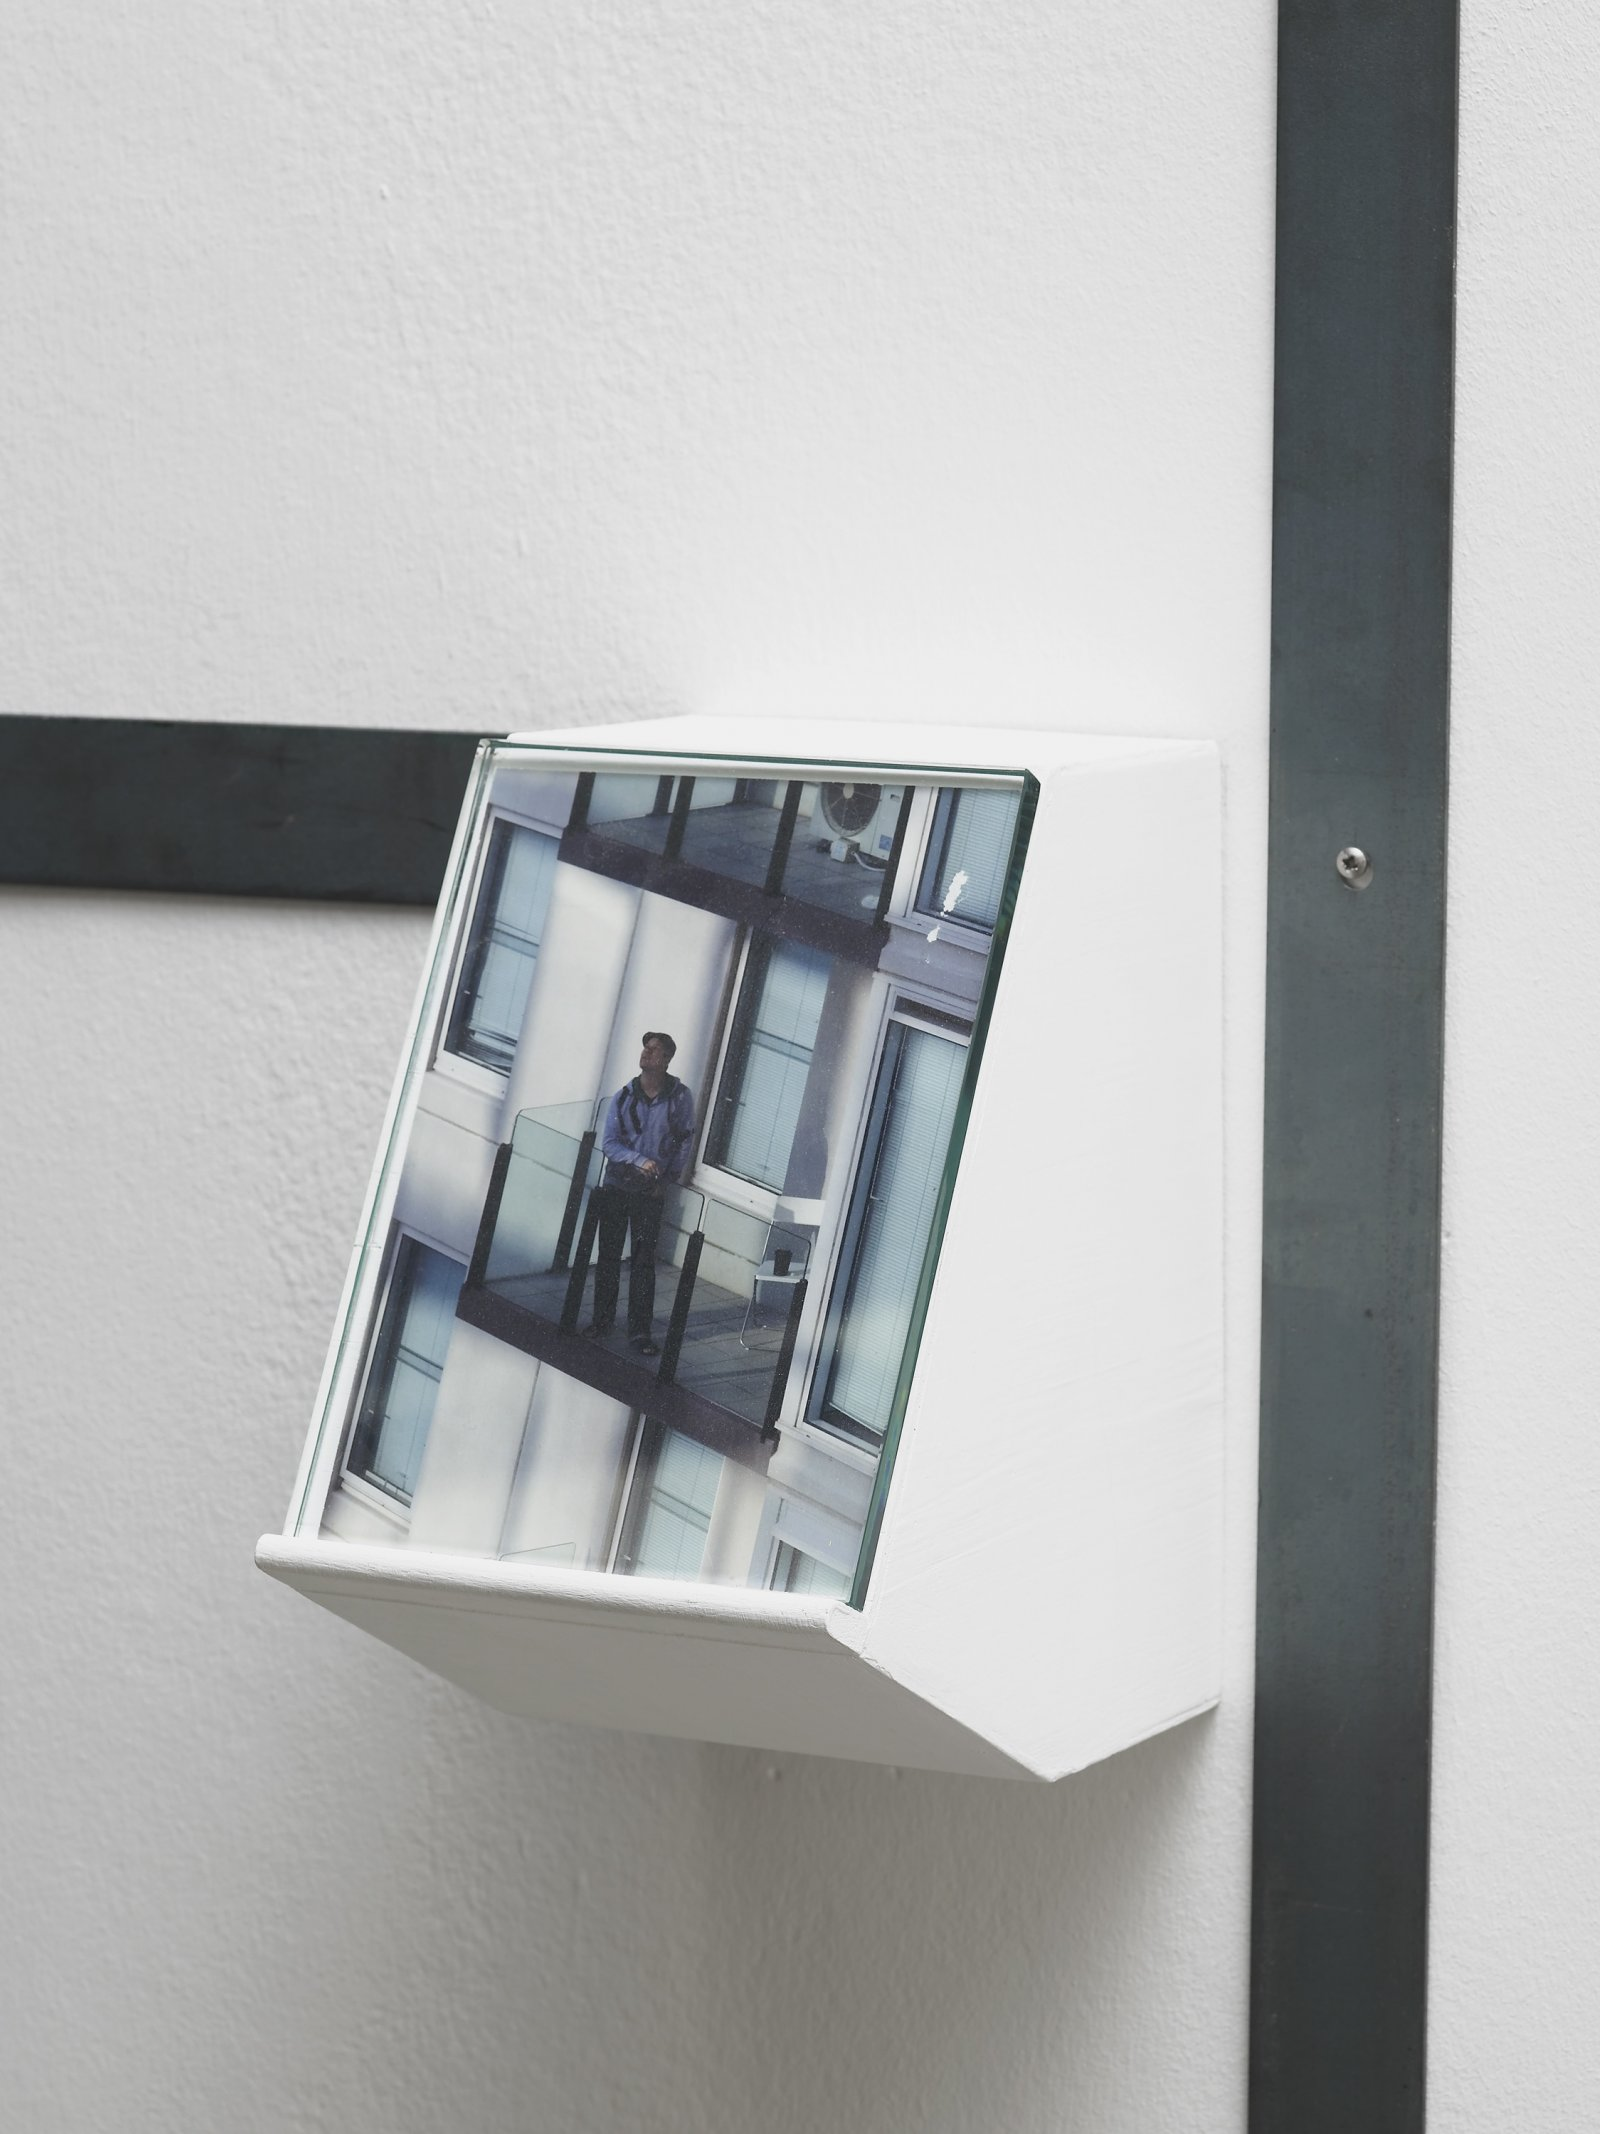 Christina Mackie, Us, The Residents (detail), 2011–2012, mixed media, dimensions variable. Installation view, Painting the Weights, Chisenhale Gallery, London, UK, 2012 by Christina Mackie